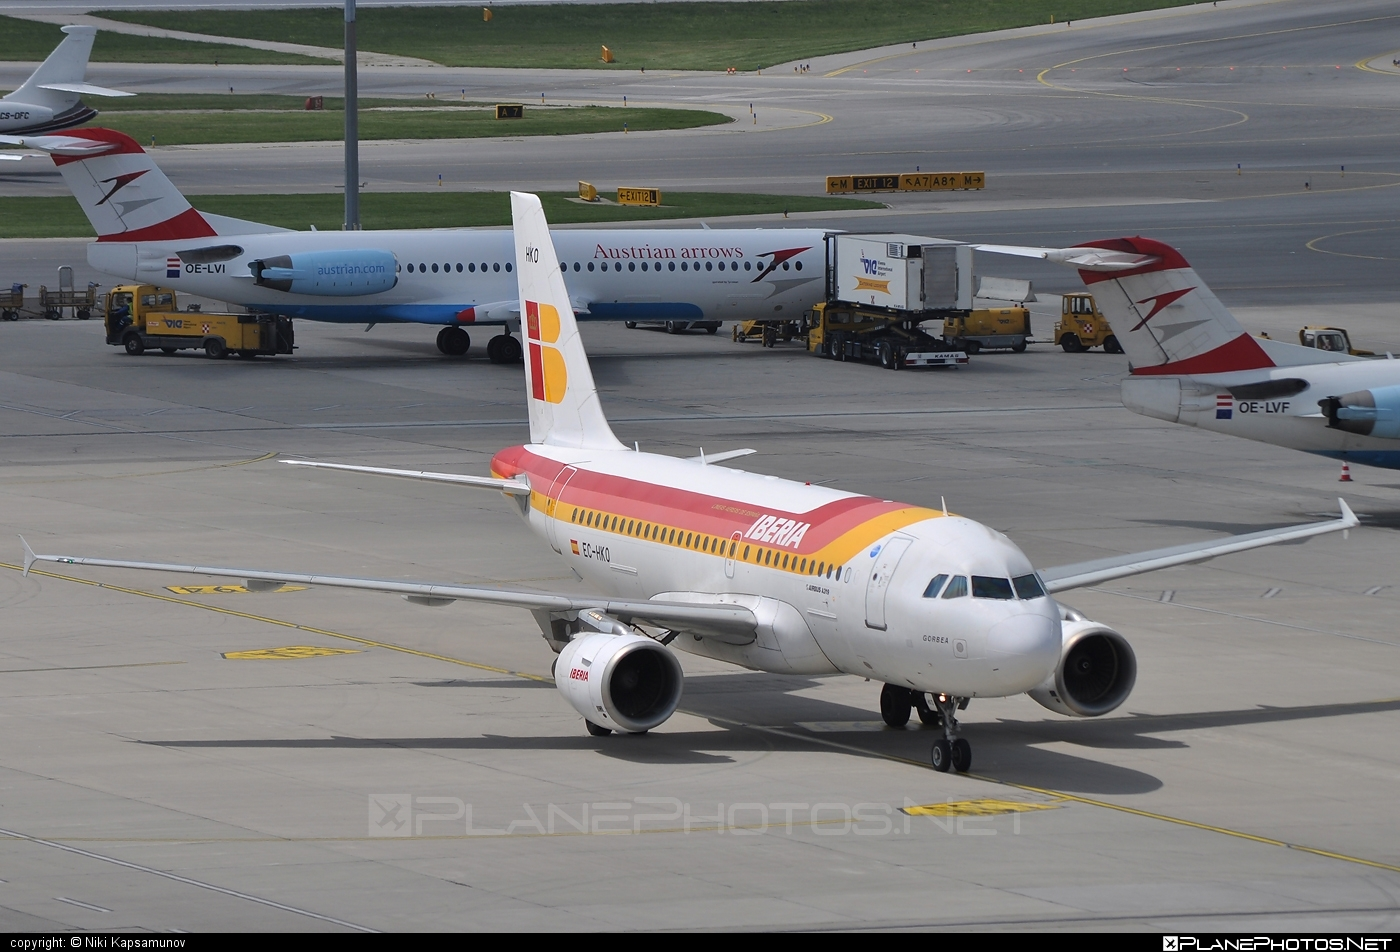 Airbus A319-111 - EC-HKO operated by Iberia #a319 #a320family #airbus #airbus319 #iberia